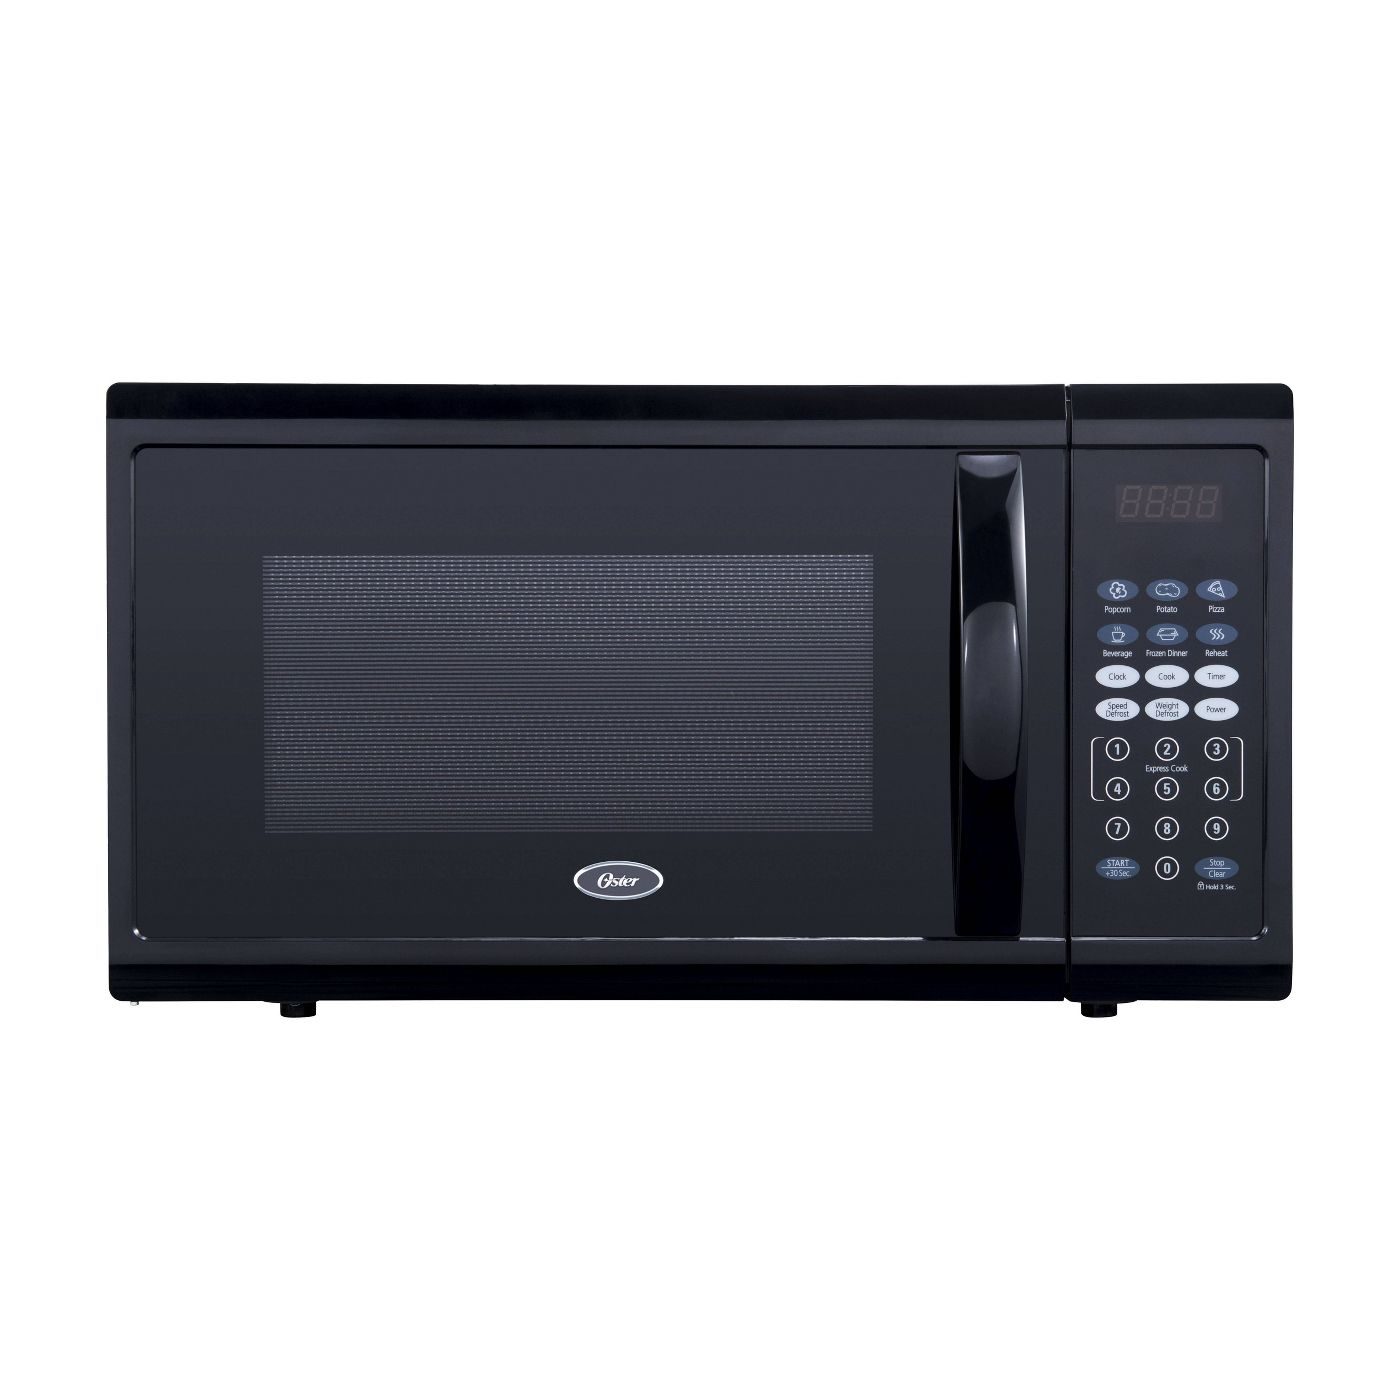 Oster digital microwave